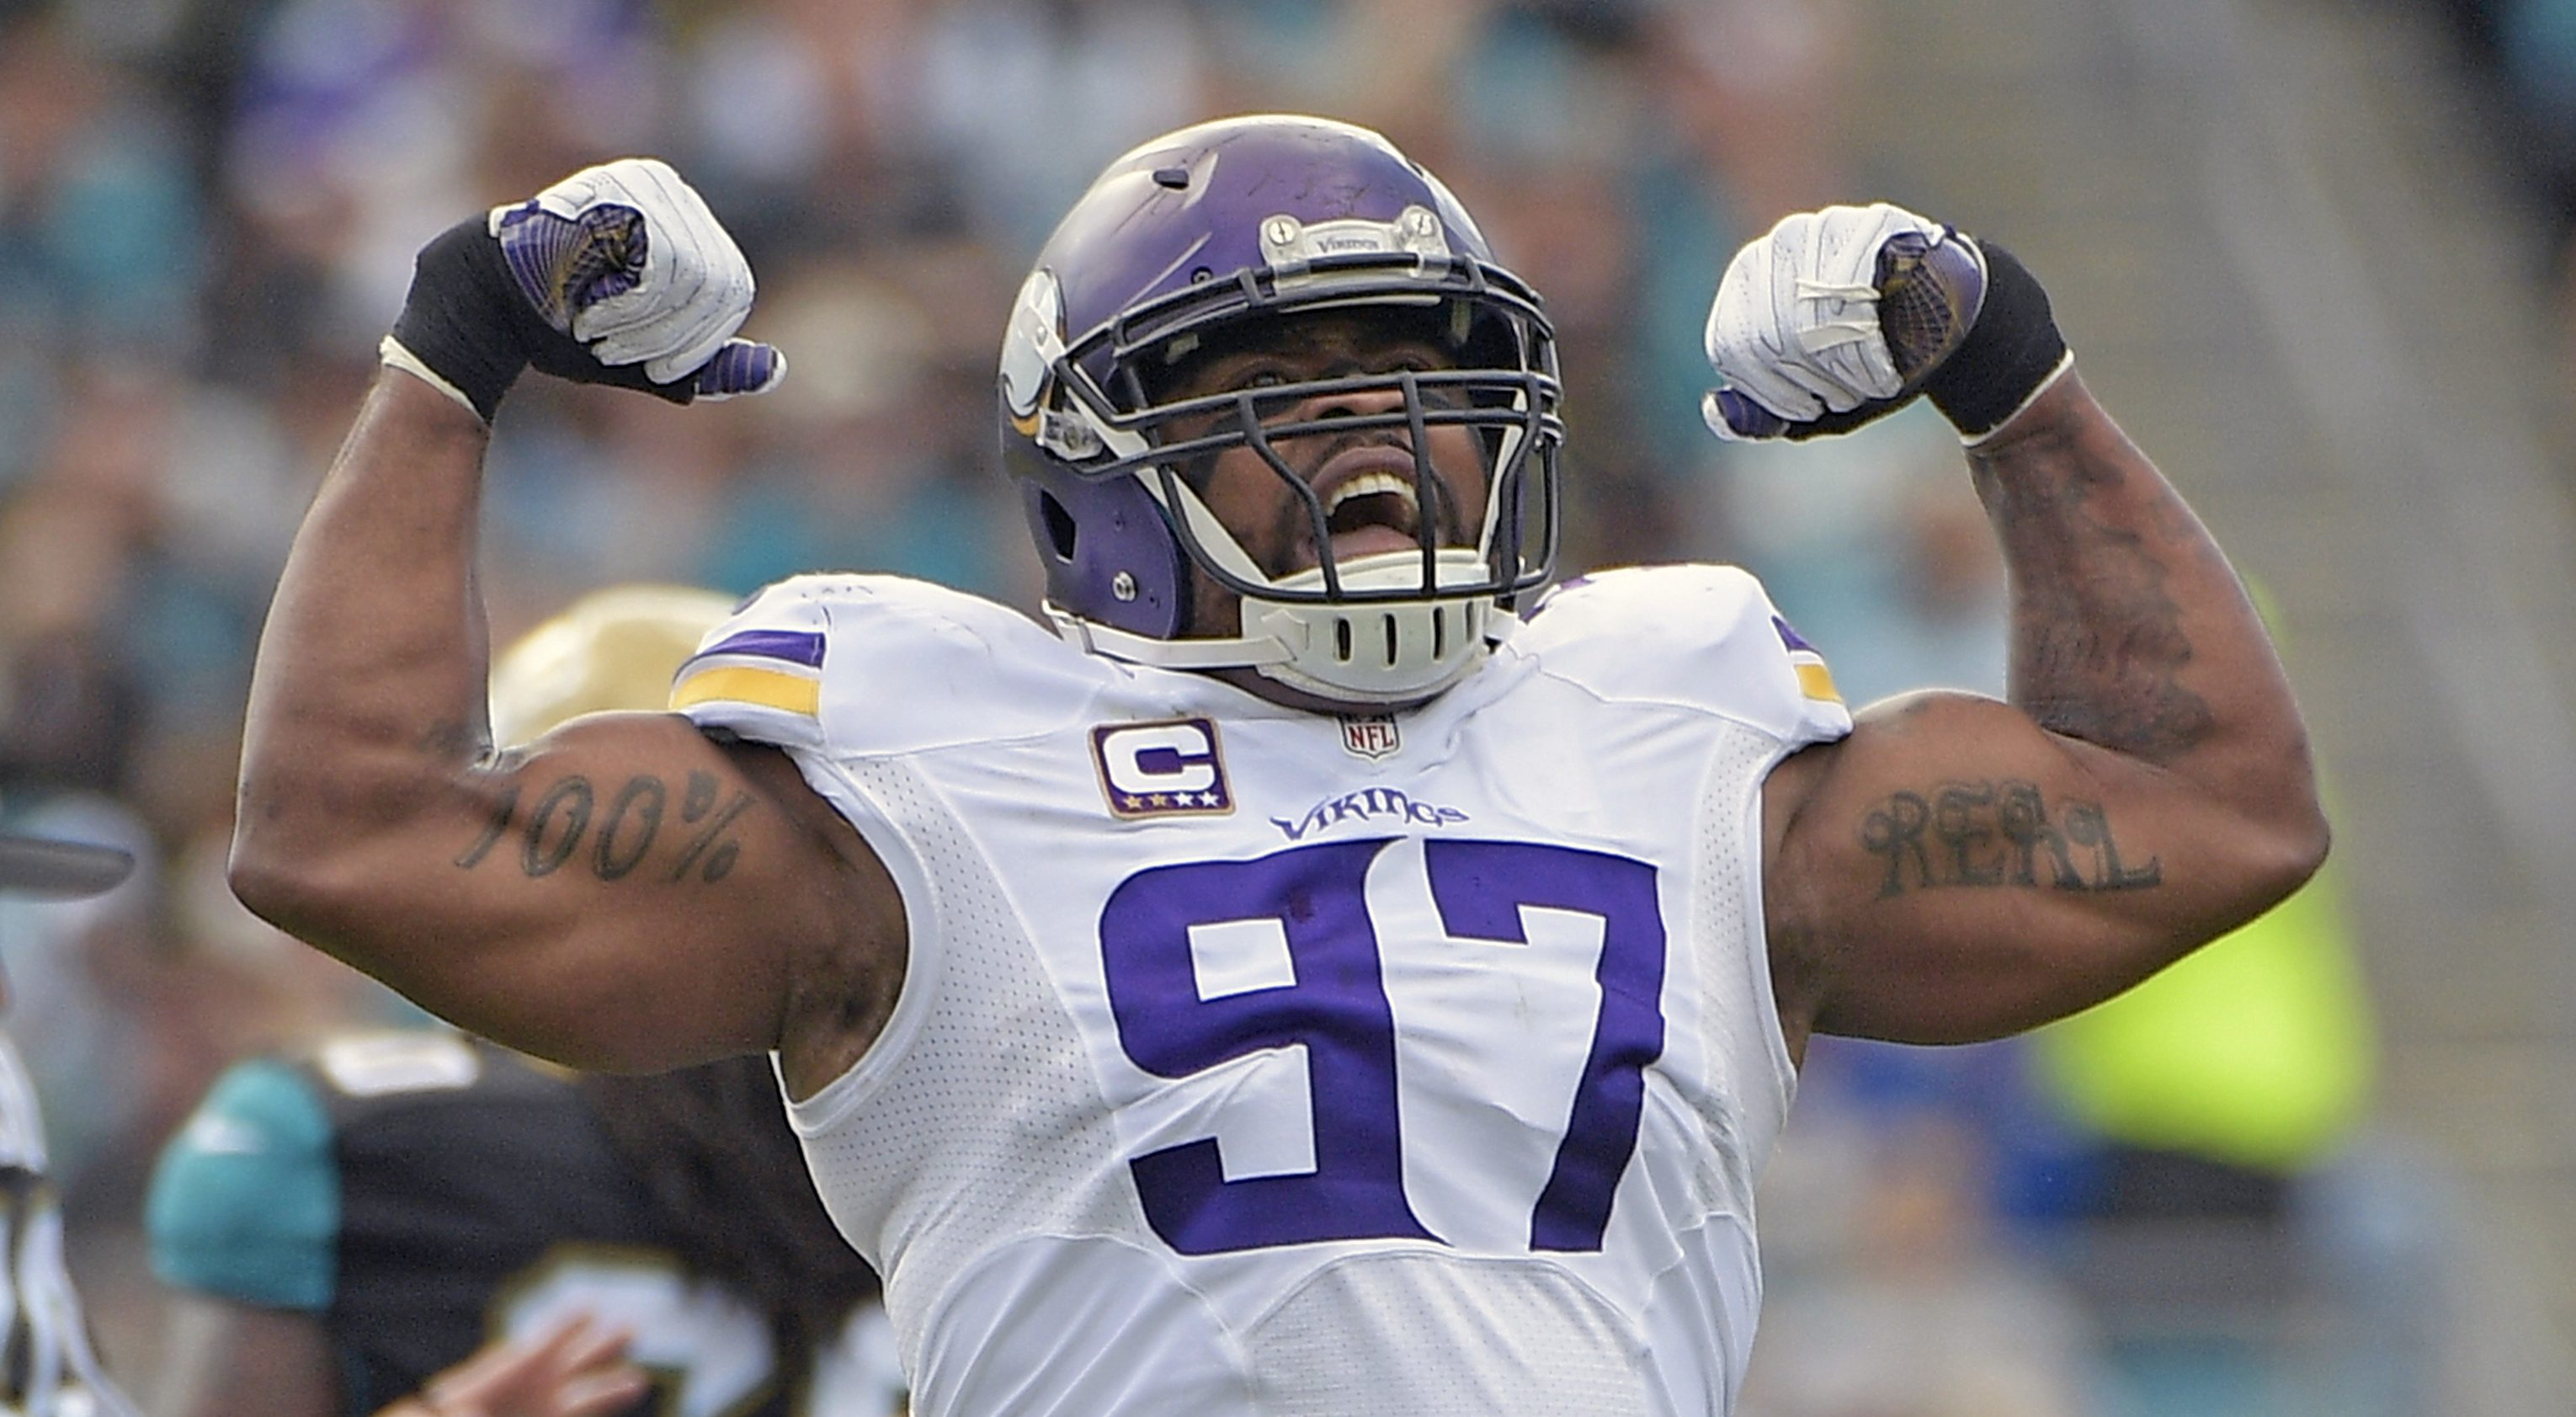 Vikings' Everson Griffen: Lions OL Greg Robinson is 'kind of lazy'